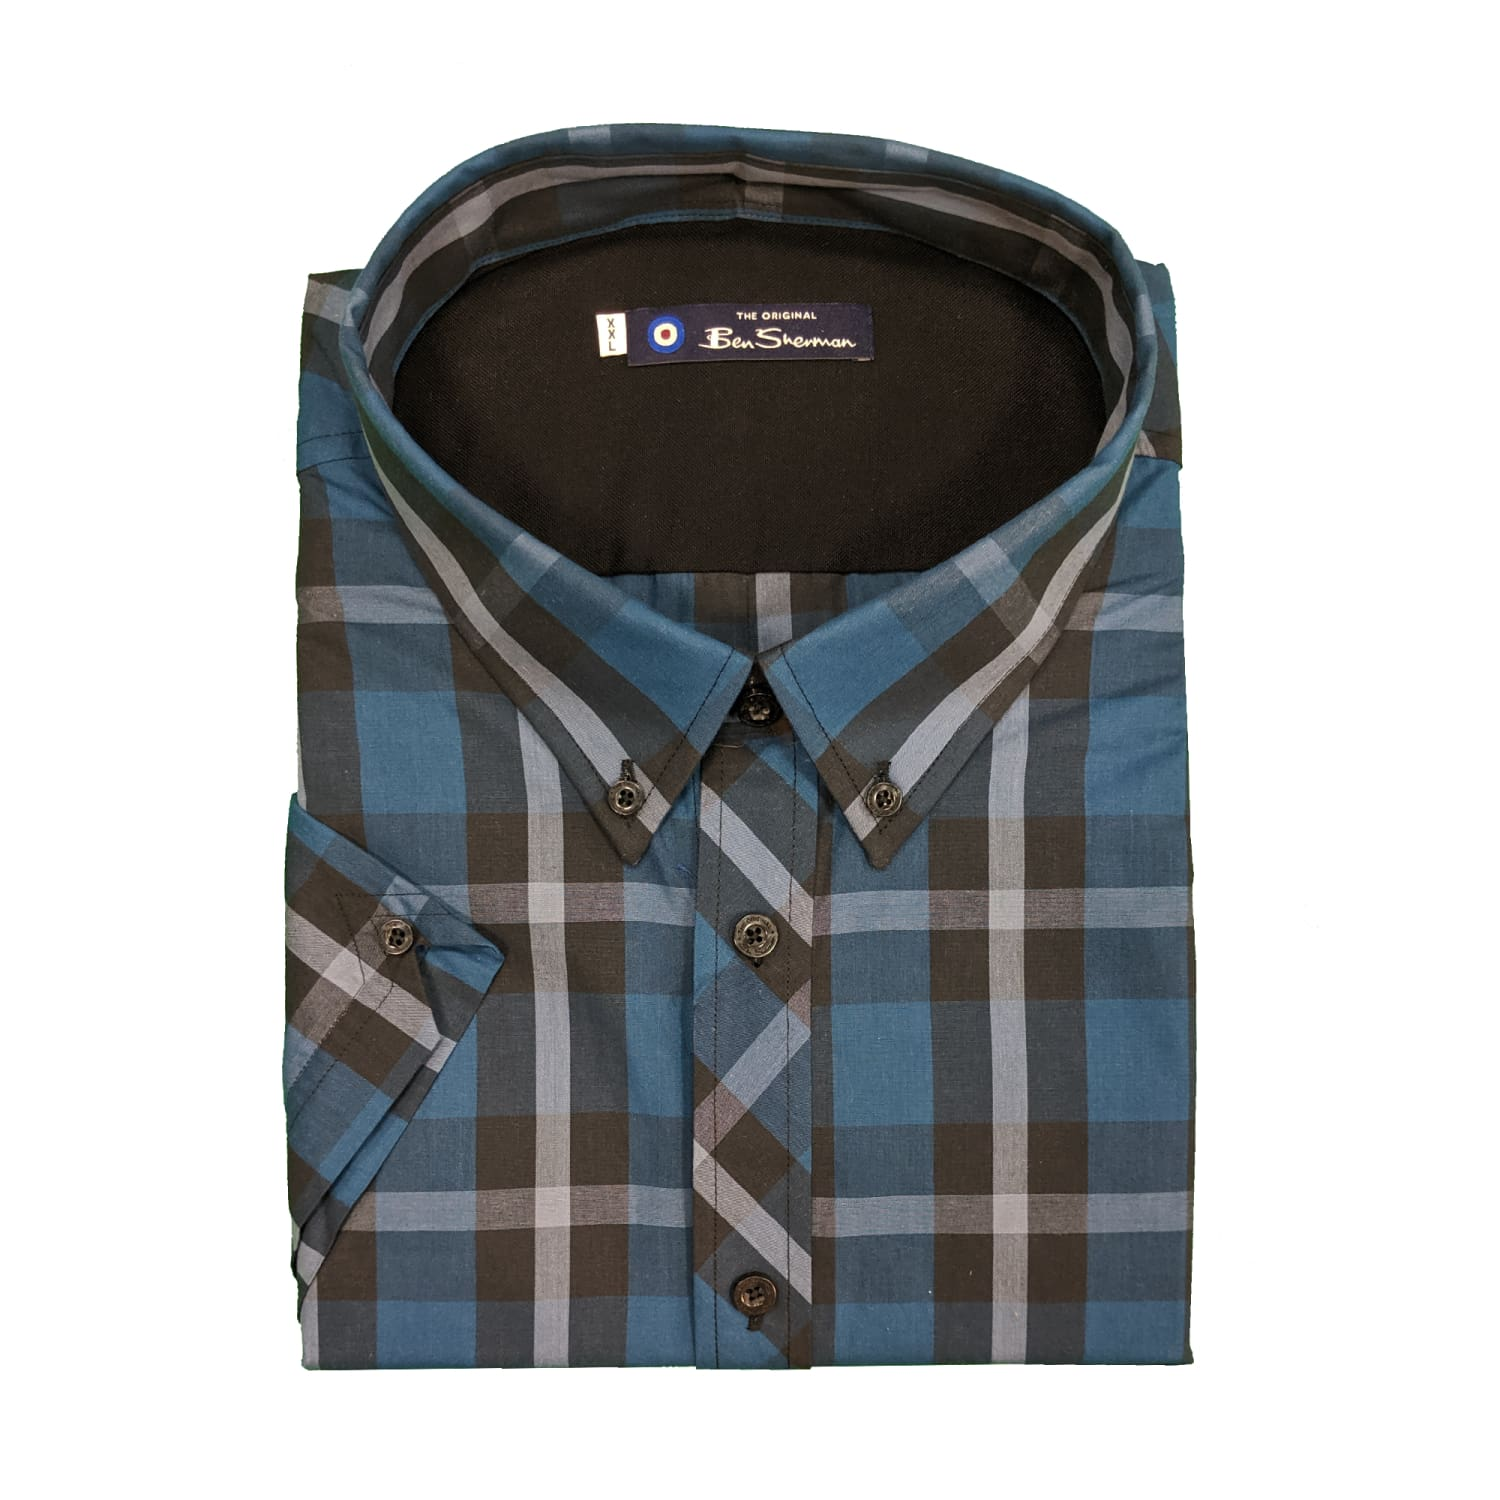 Ben Sherman S/S Shirt - 0059974IL - Lake 1